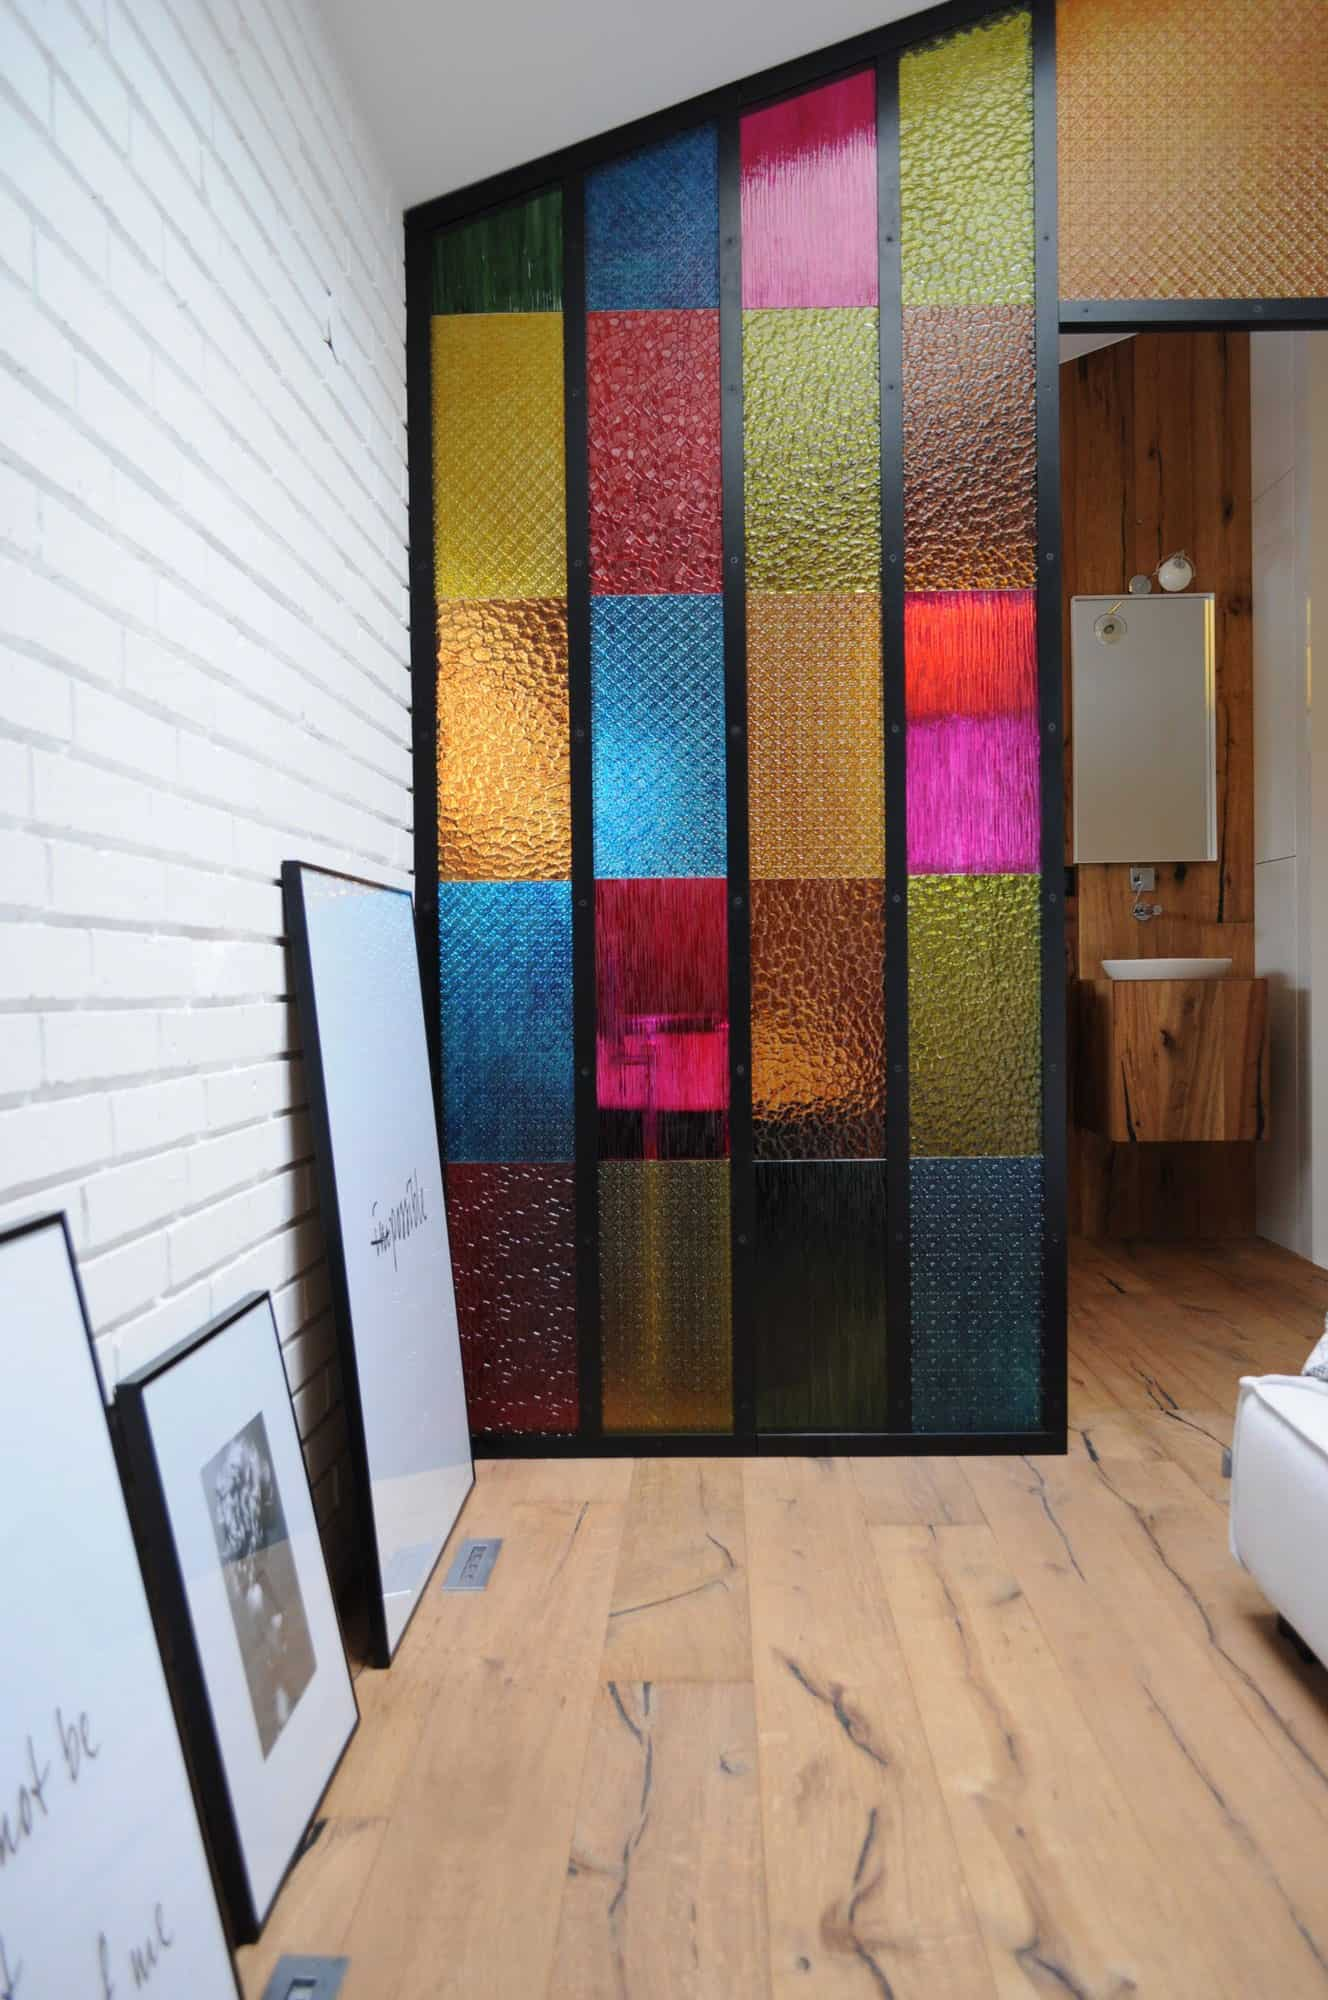 Bedroom Bathroom Partition in Colored Plastic Panels - DIY idea